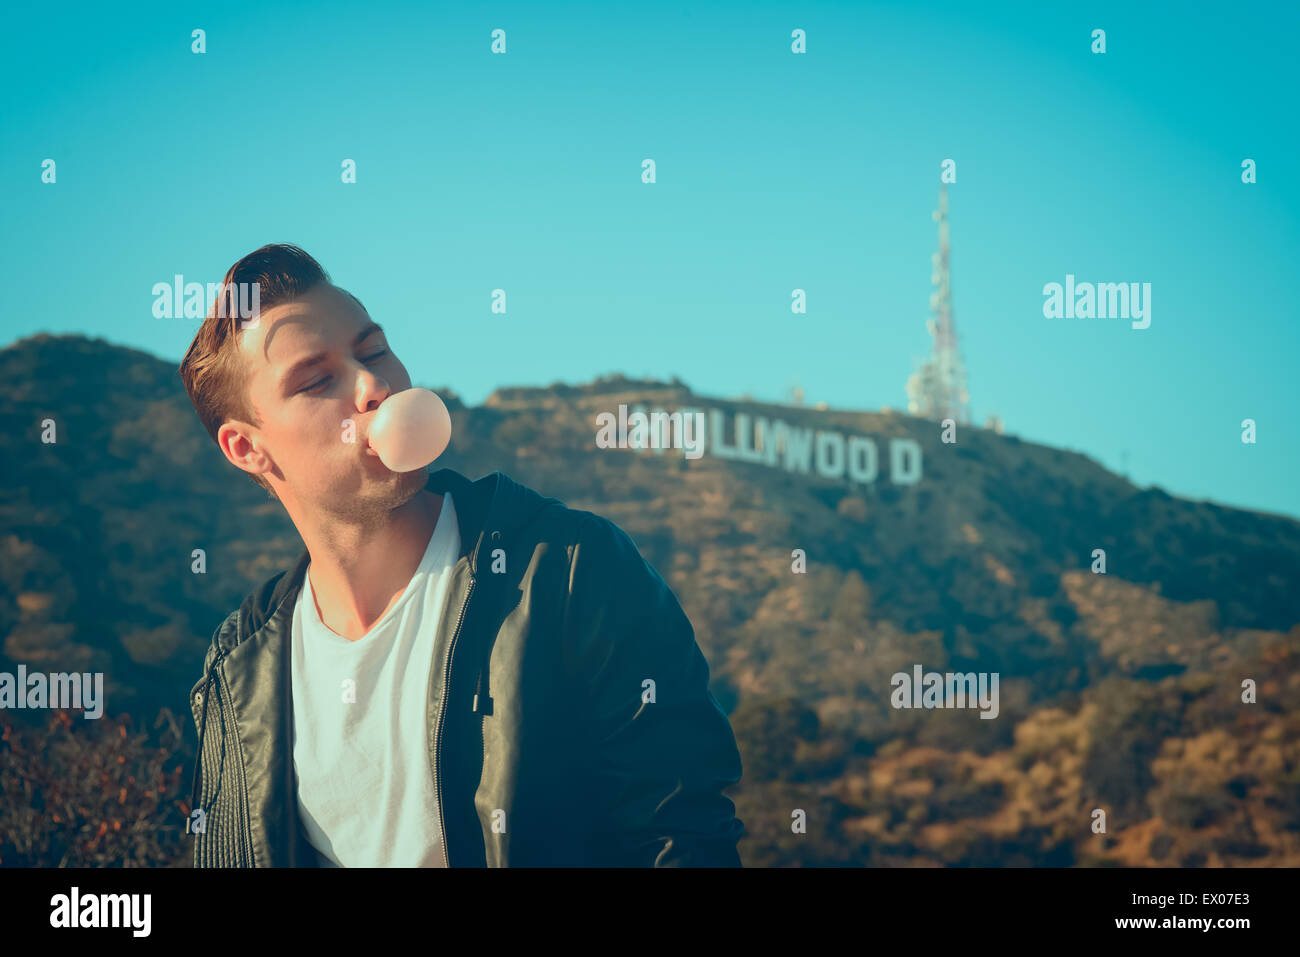 A Happy Man Blowing Bubble Posing Outdoor With The Hollywood Sign In Background At Sunset Mens Vintage Fashion Editorial Concept